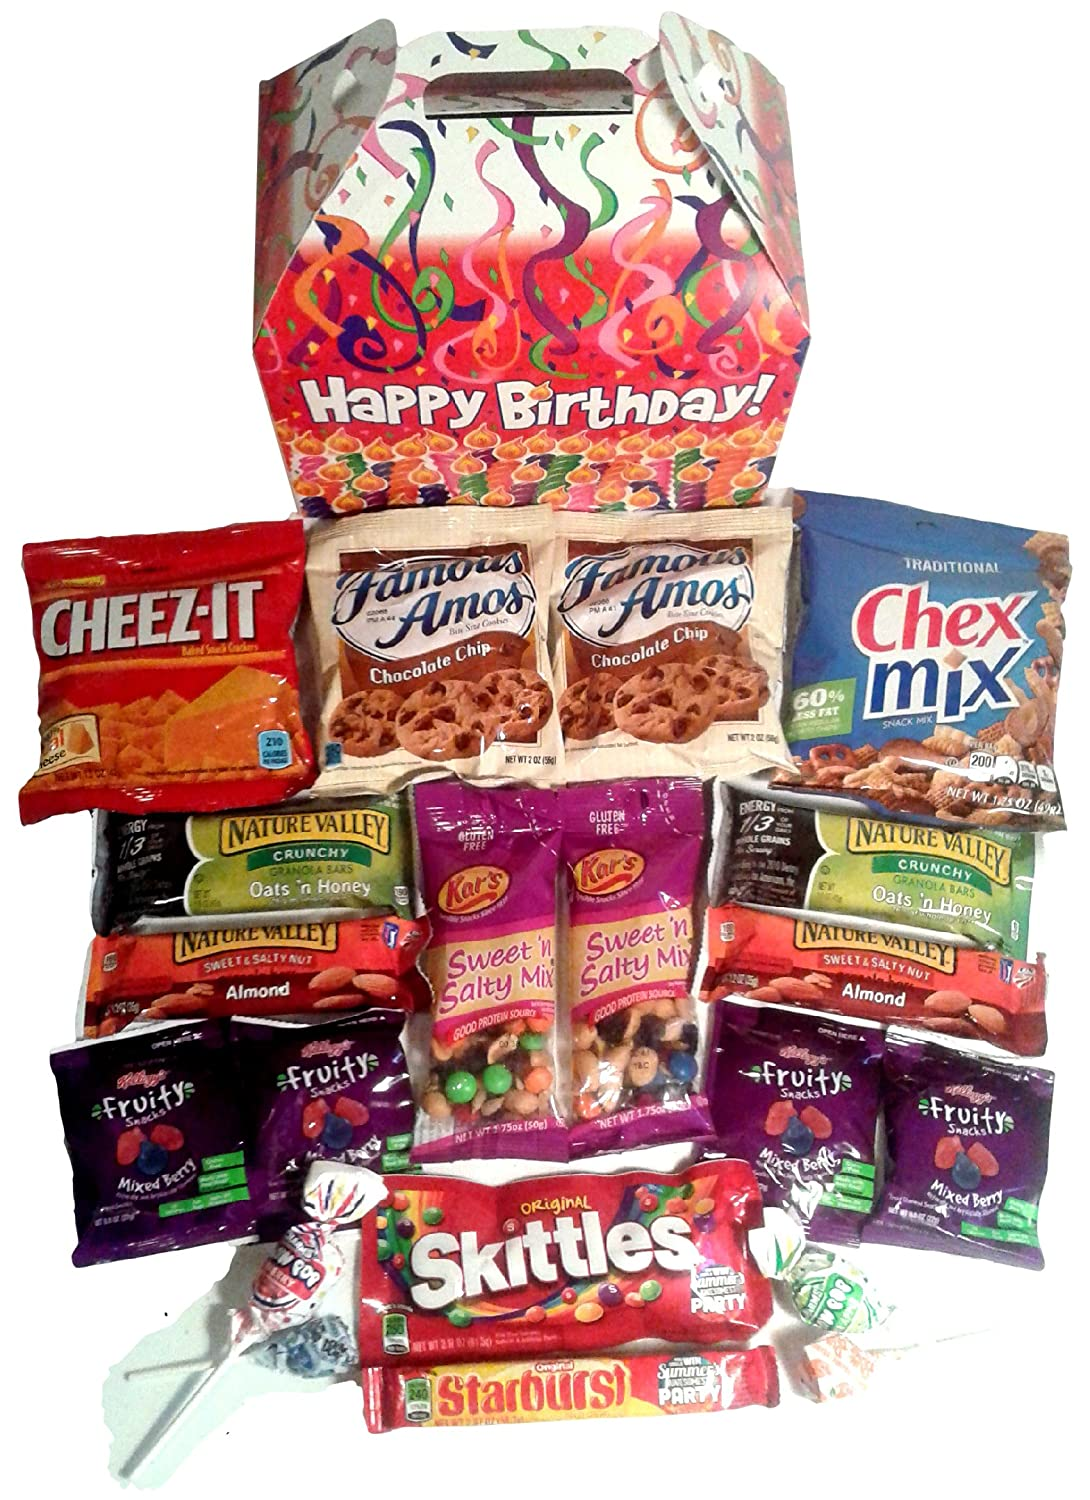 Happy Birthday Care Package features fun birthday candles graphic Gift Box stuffed with savory snacks and sweet candy treats, the perfect gift for your college student, military, or co-worker